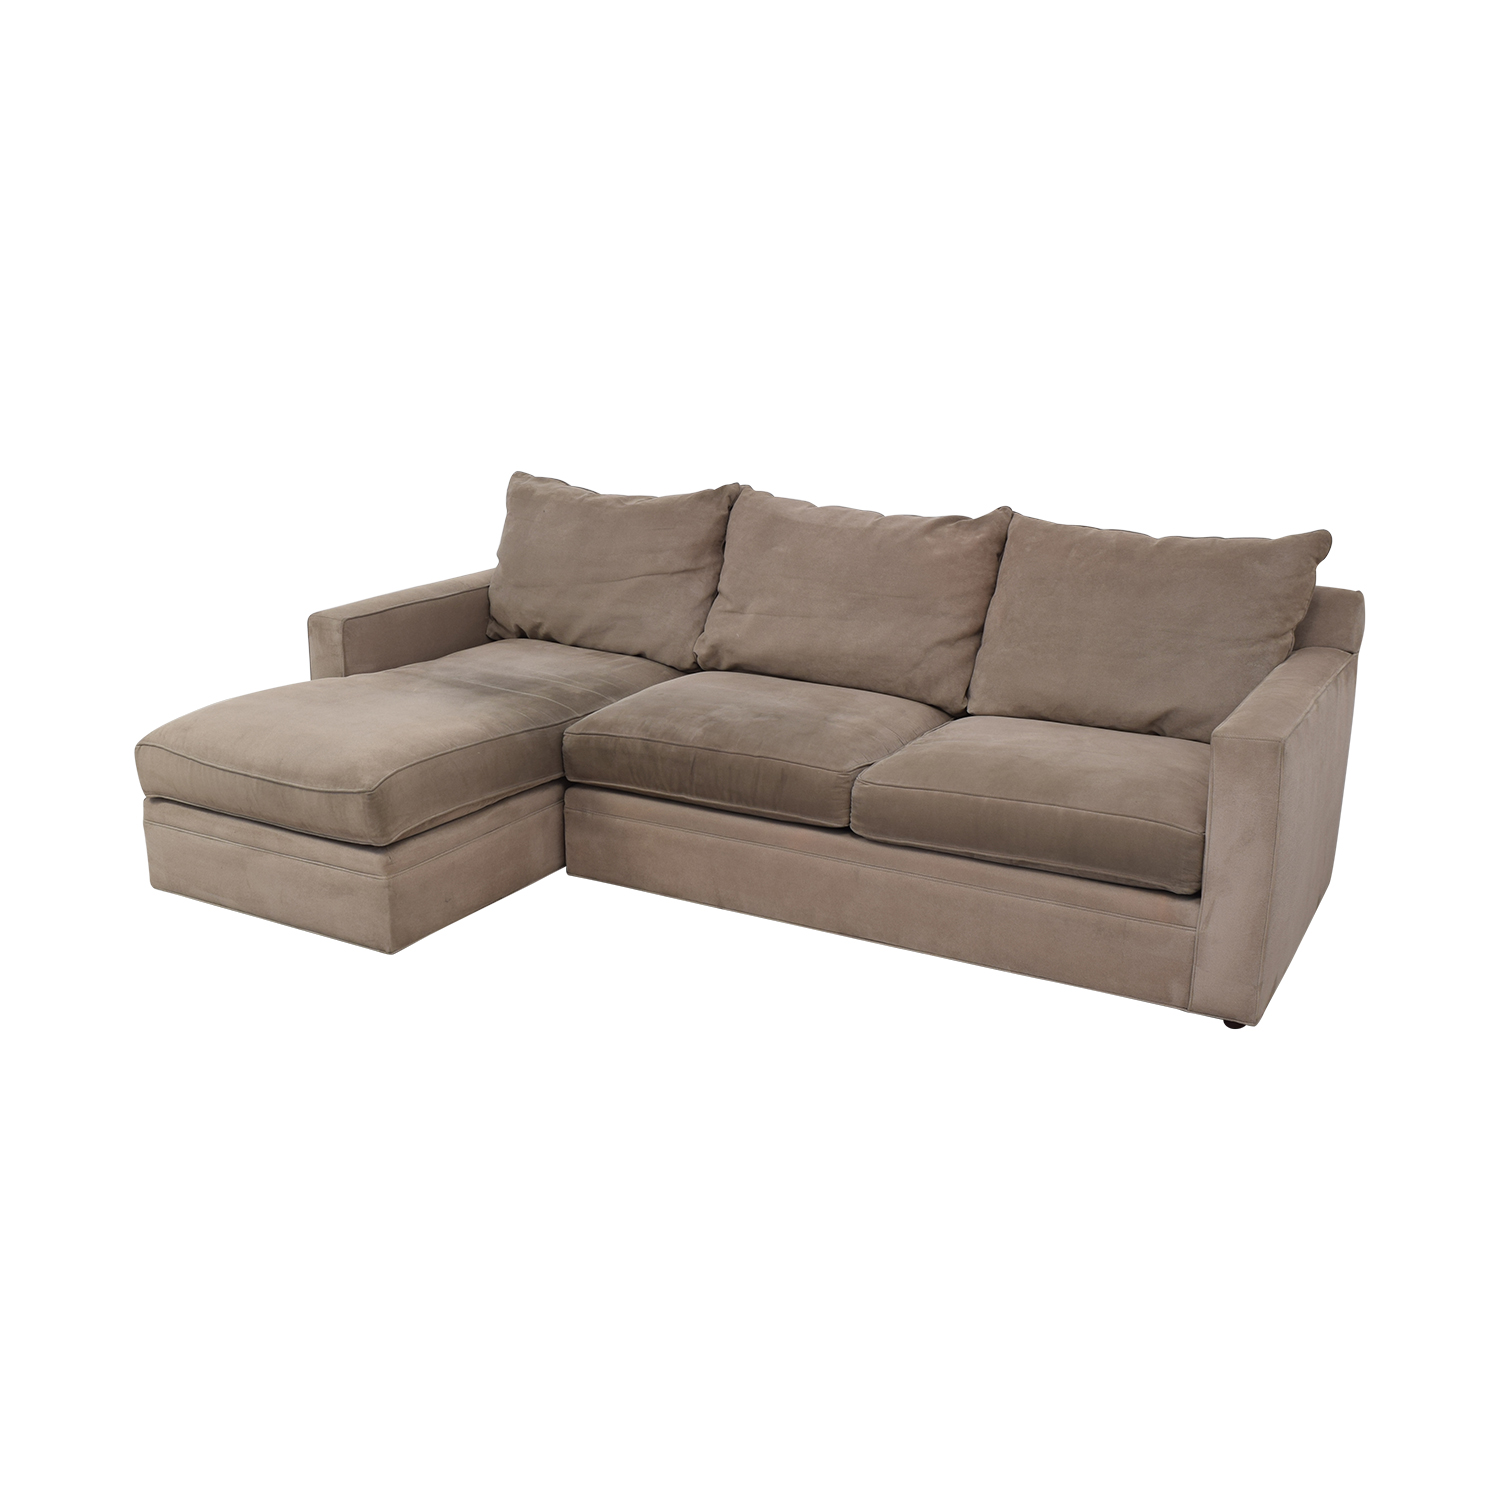 Room & Board Room & Board Orson Sectional Couch for sale